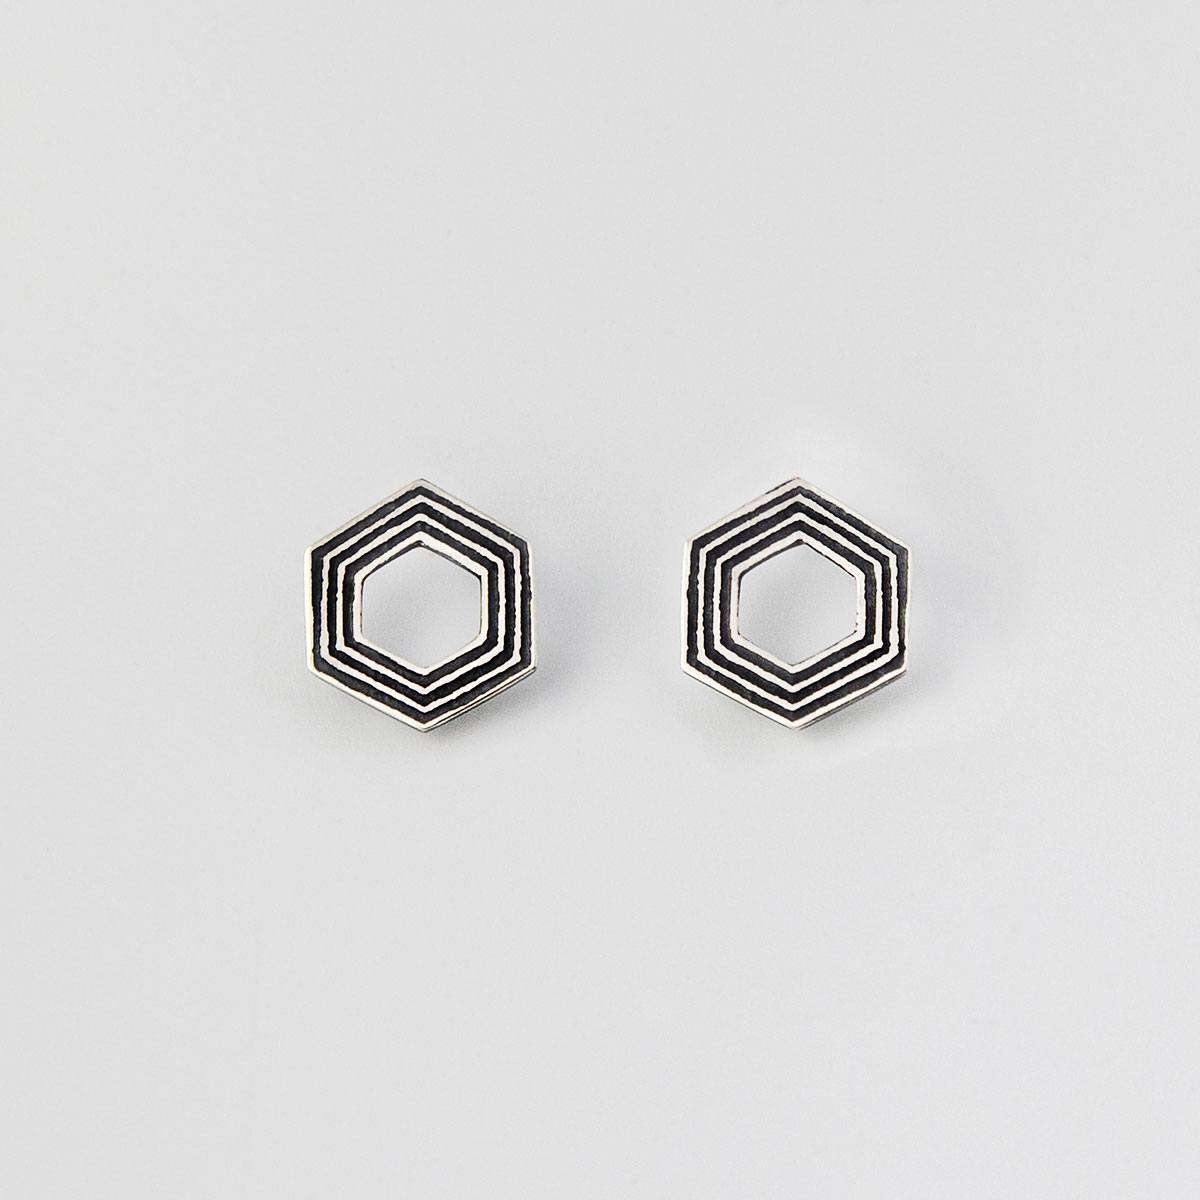 'Lines in Motion' Silver and Black Hexagonal Earrings, Small